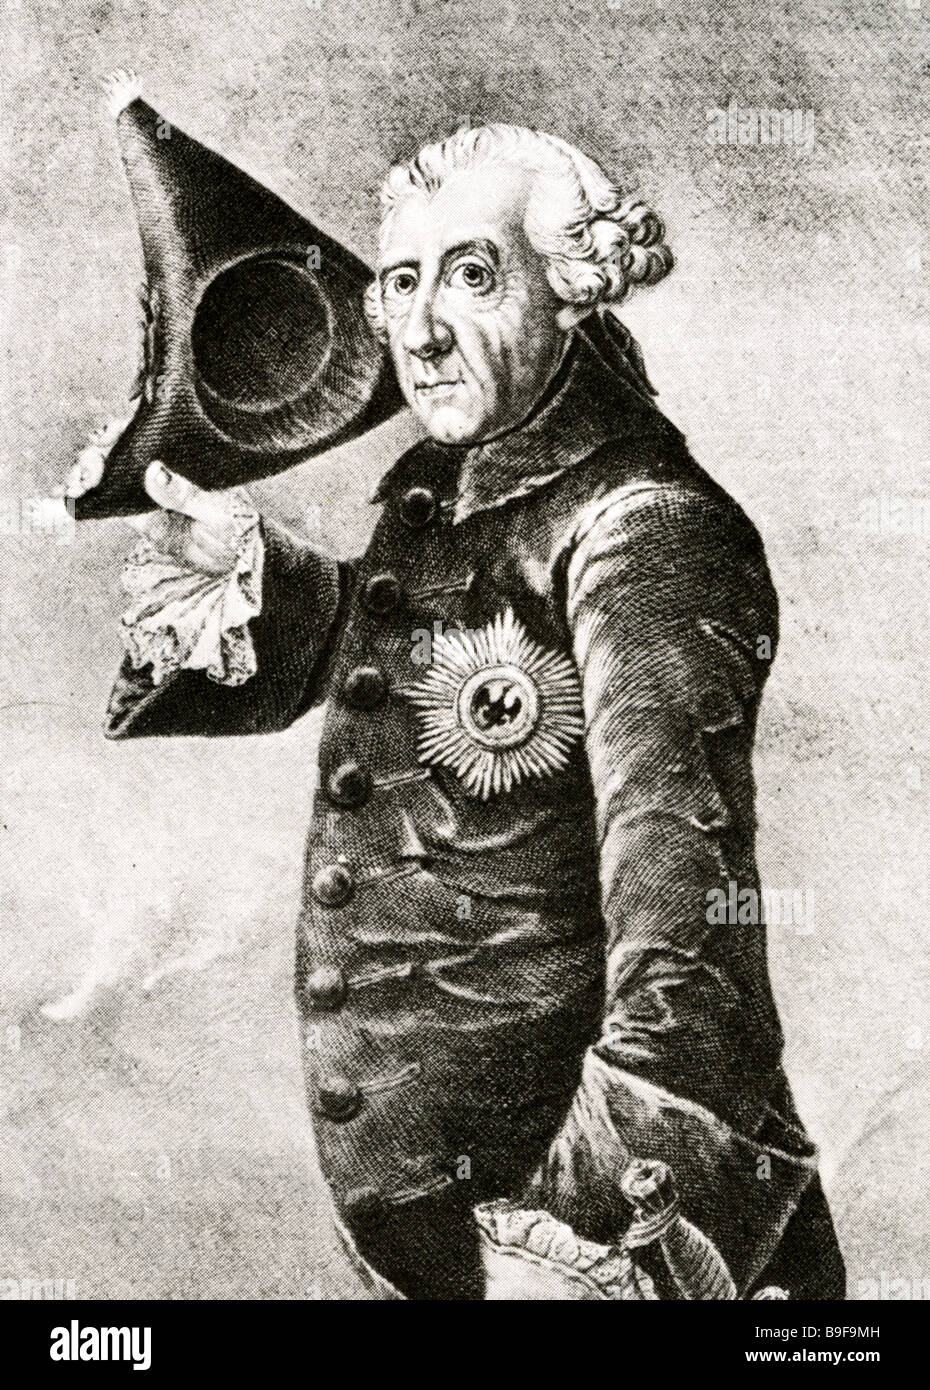 FREDERICK II known as FREDERICK THE GREAT King of Prussia 1712 to 1786 - Stock Image